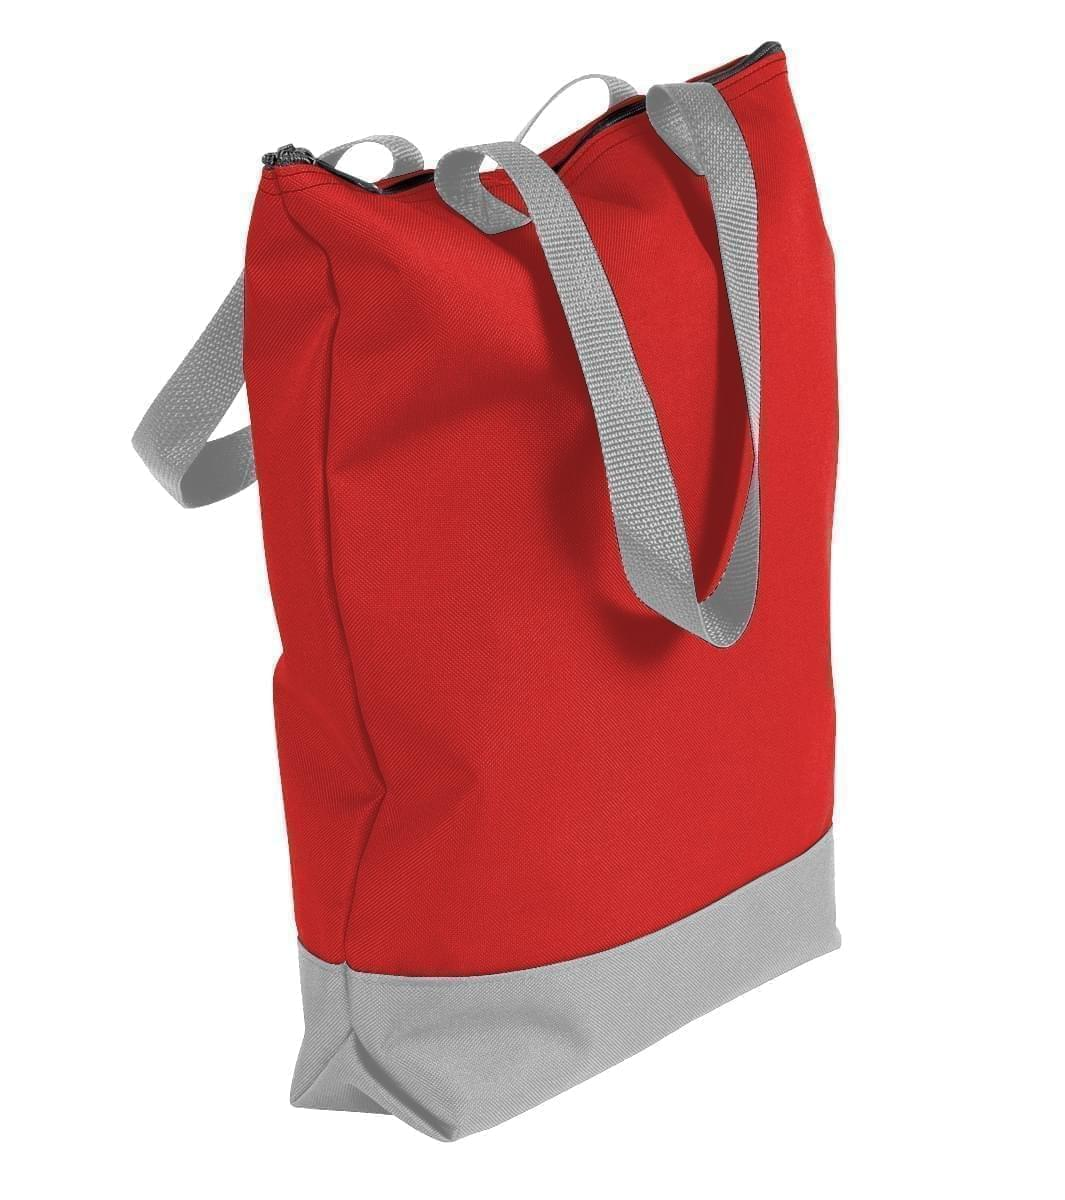 USA Made Poly Notebook Tote Bags, Red-Grey, 1AAMX1UAZU